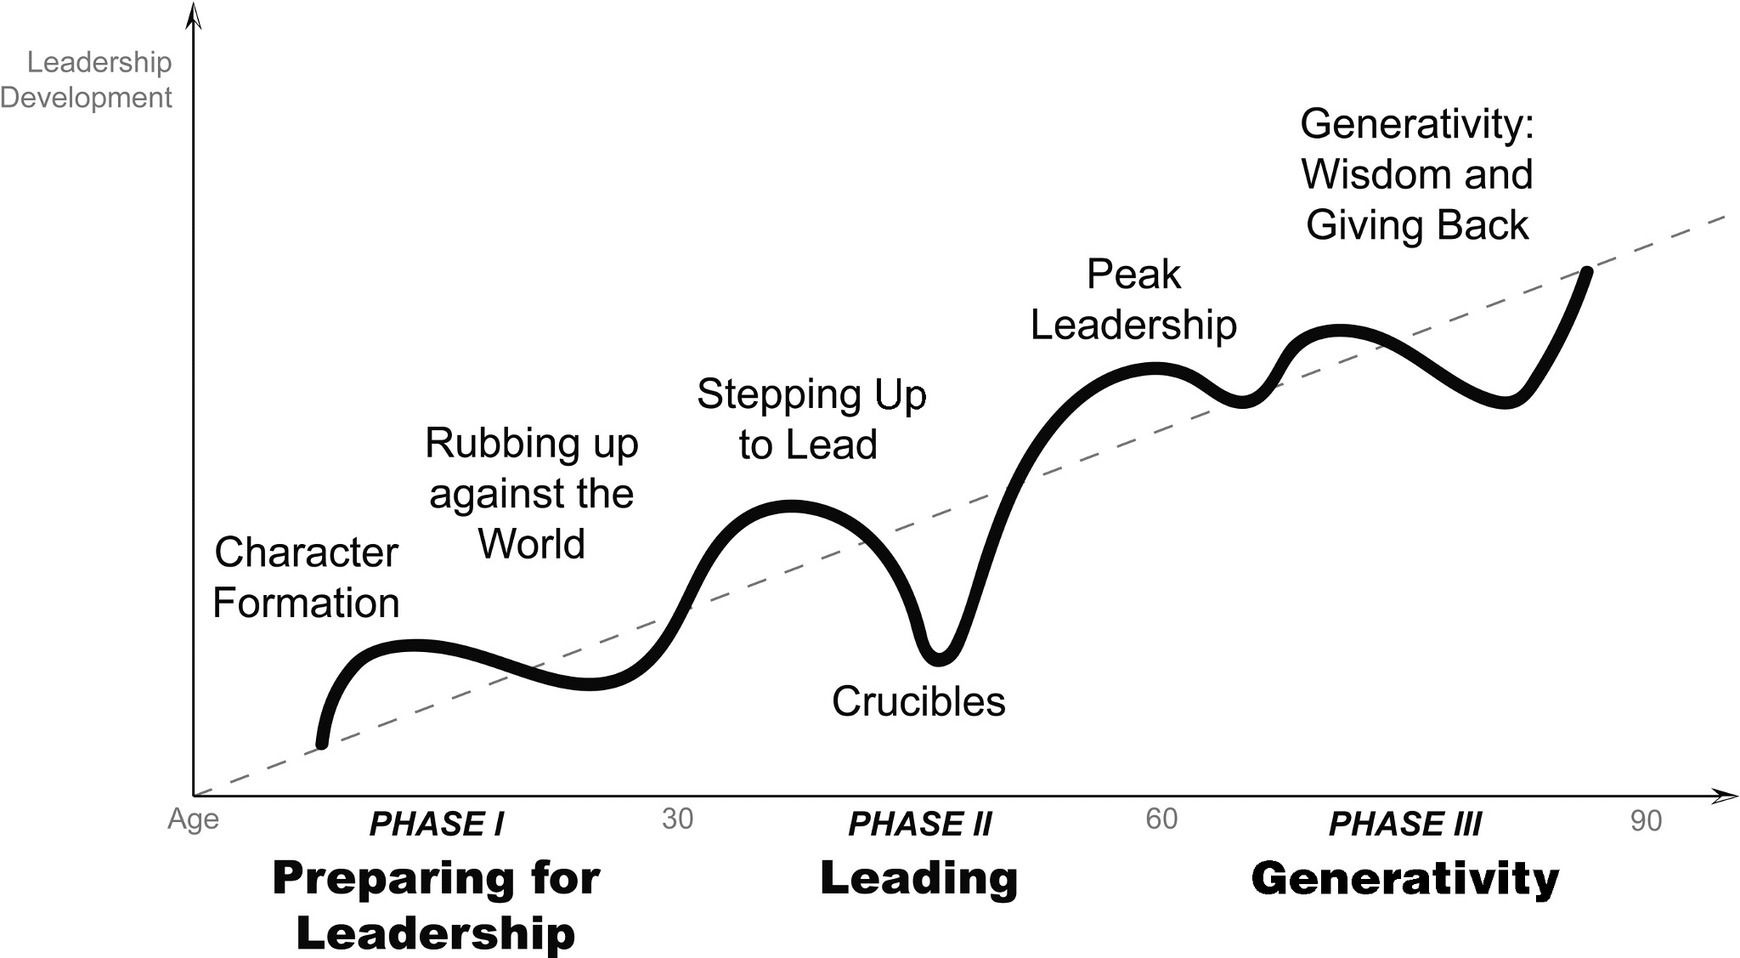 Journey to Authentic Leadership - By Bill George